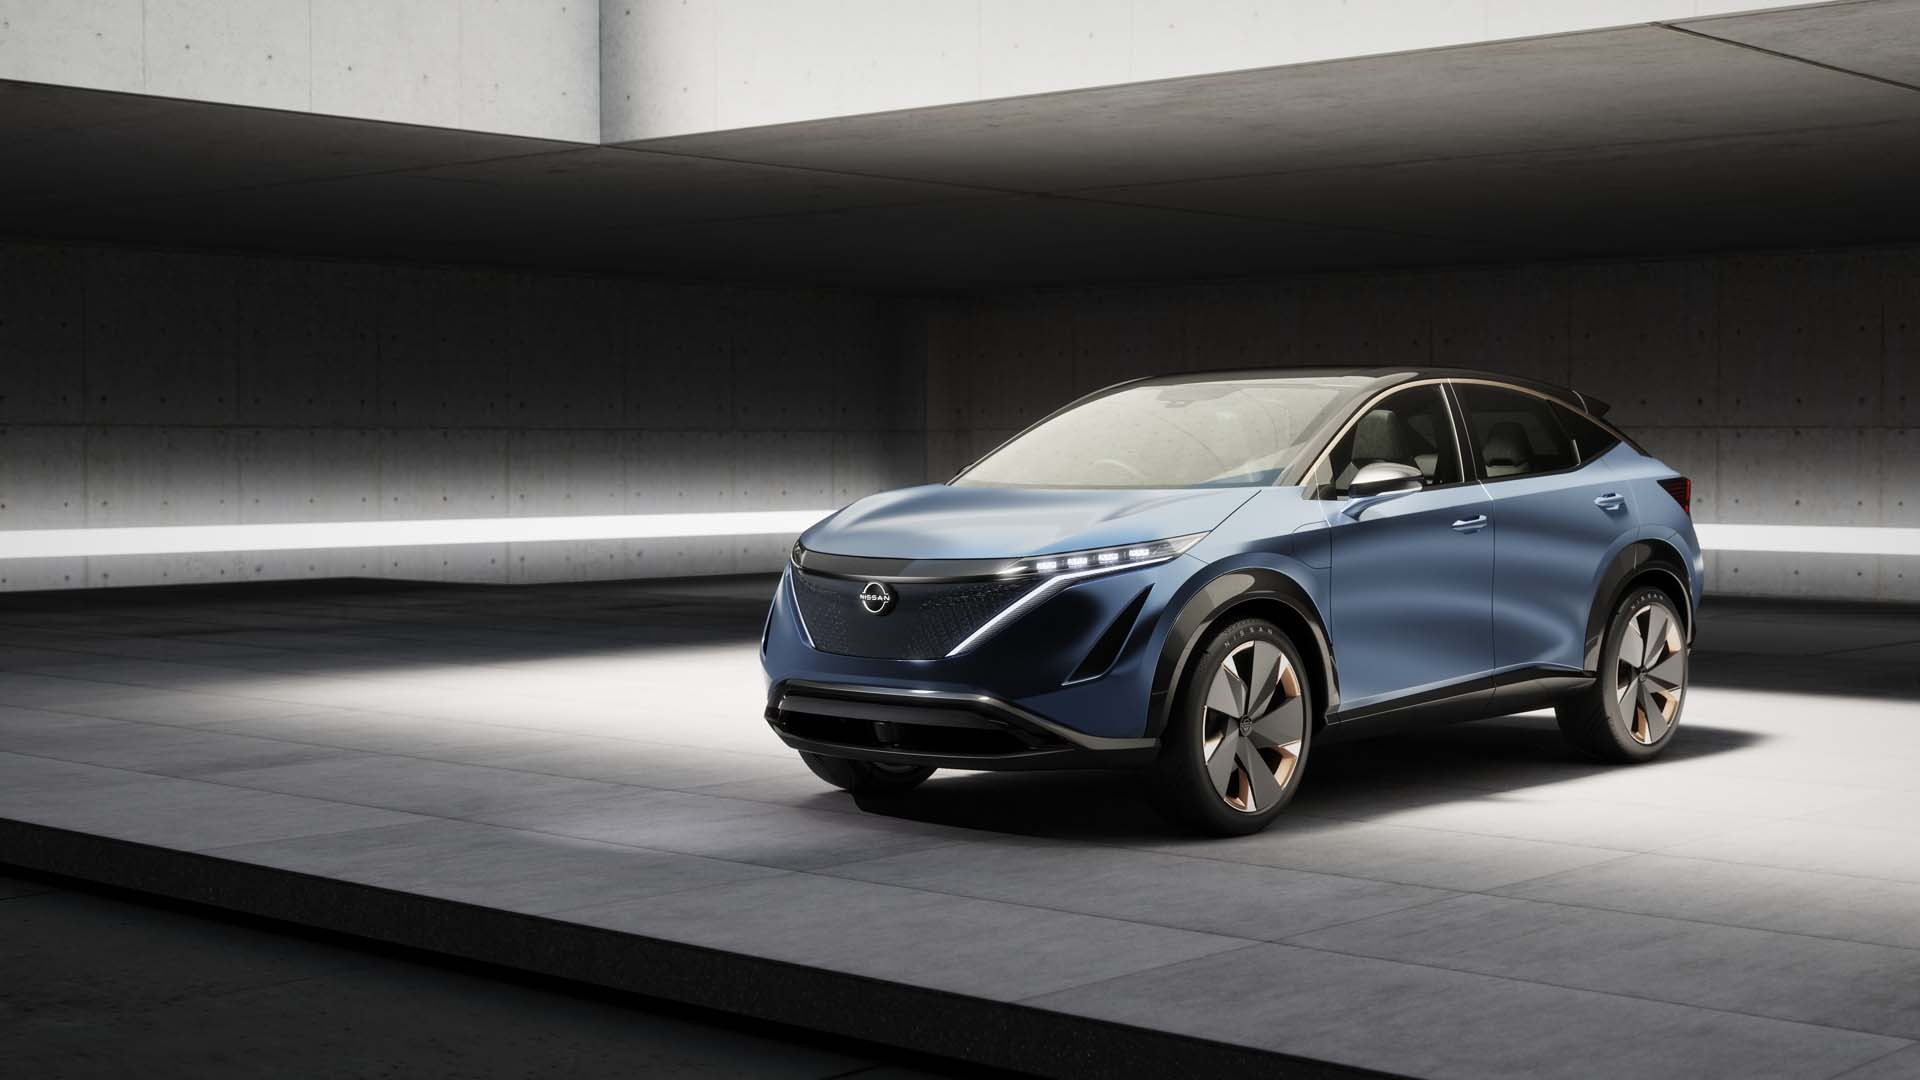 Nissan Ariya Concept Previews Future Midsize EV Crossover